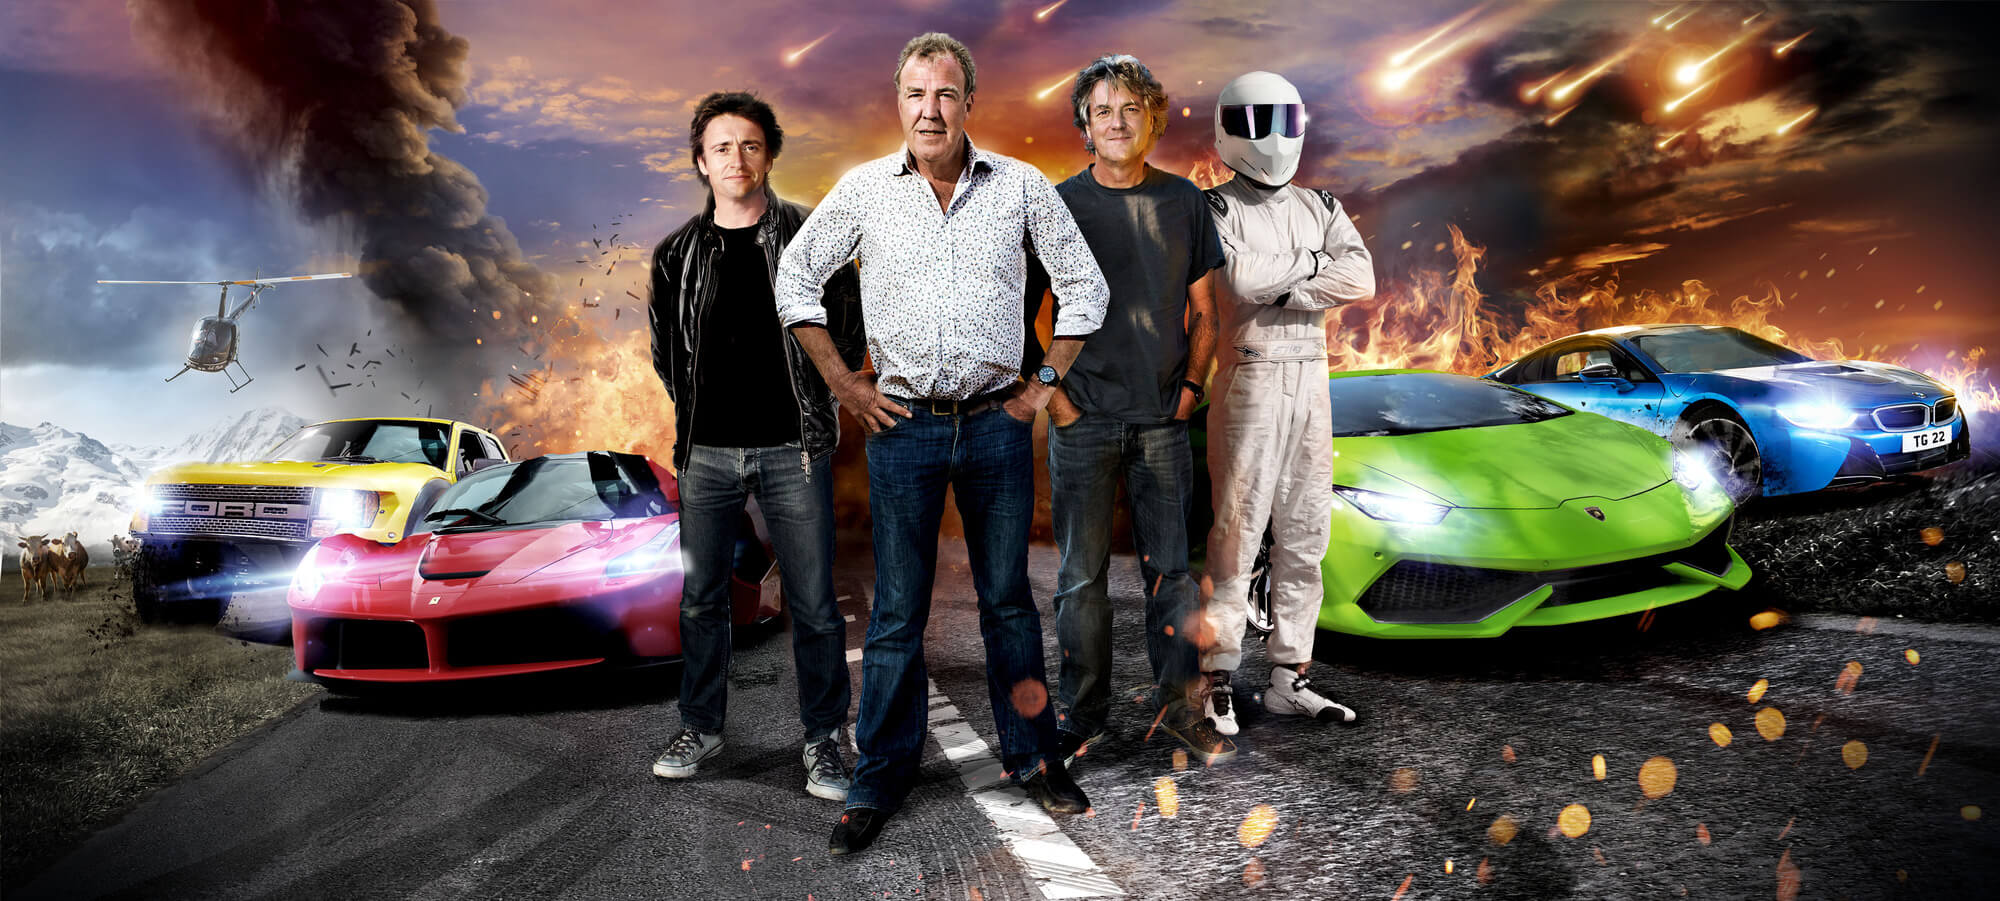 Top Gear will no doubt be back, but not as we know it.